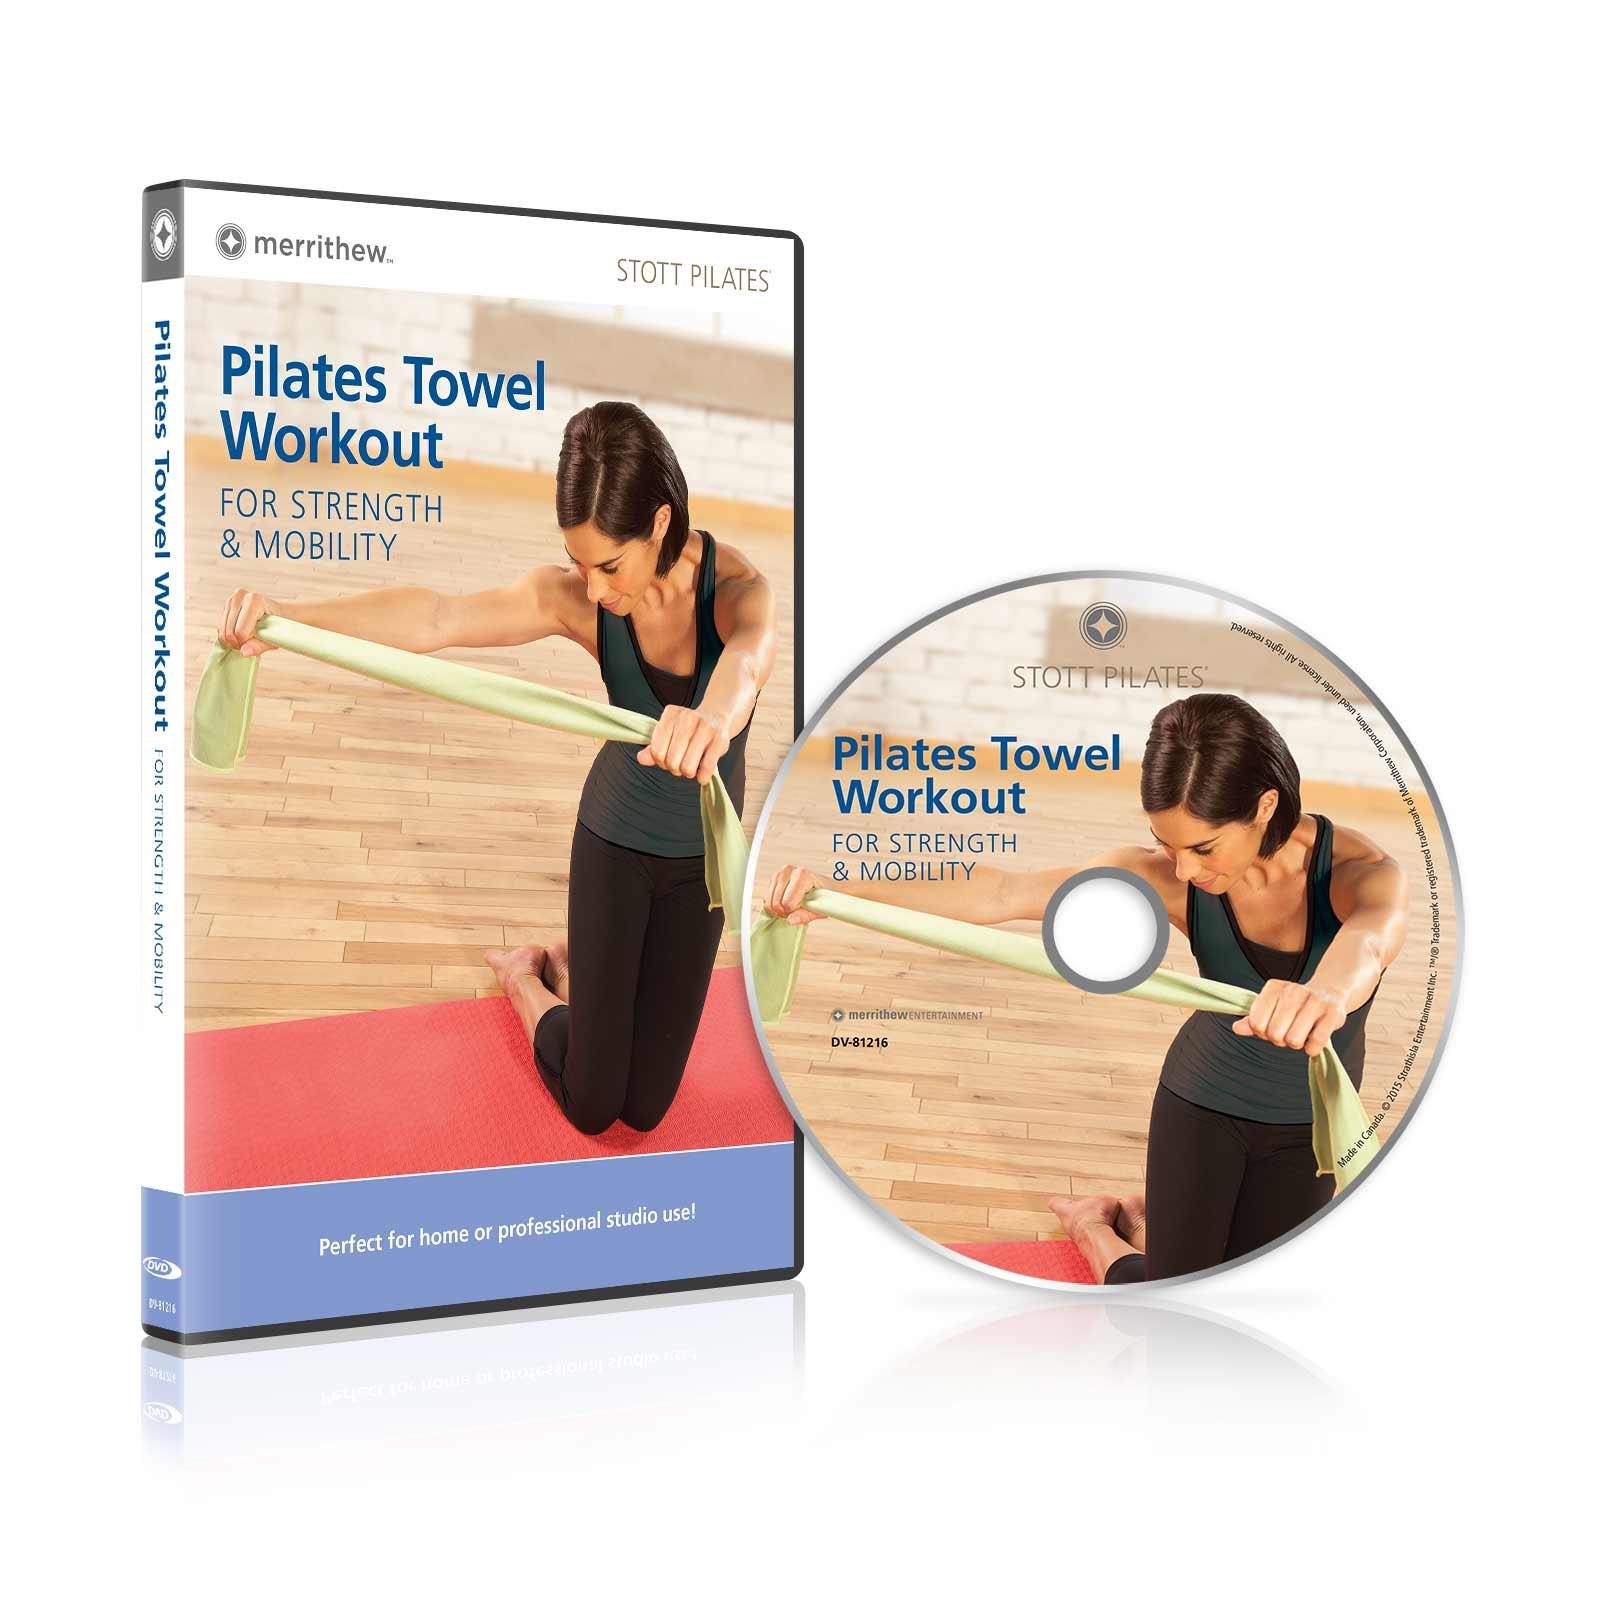 Body Workout With Towel: Pilates Towel Workout For Strength & Mobility